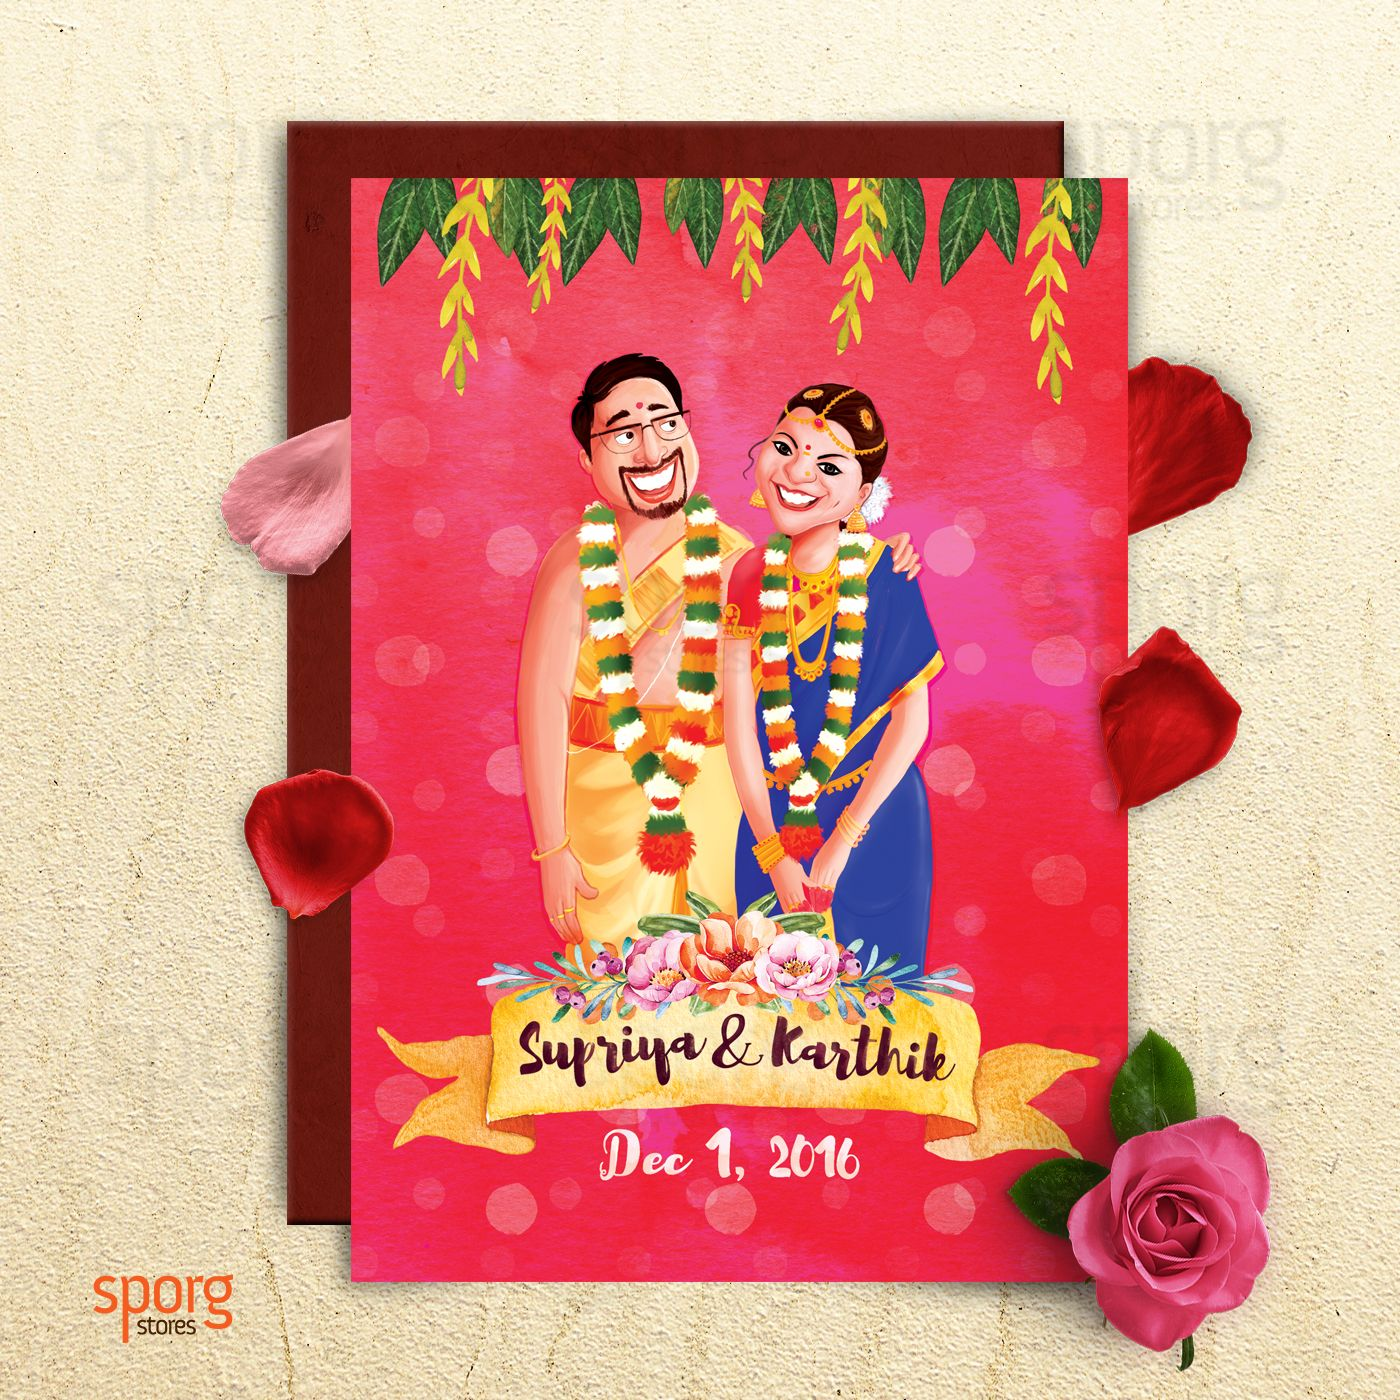 Check Out Caricature Invites Unique Indian Wedding Invitation Card Ideas The New Personal Trend On Block From Yuvraj Singh S